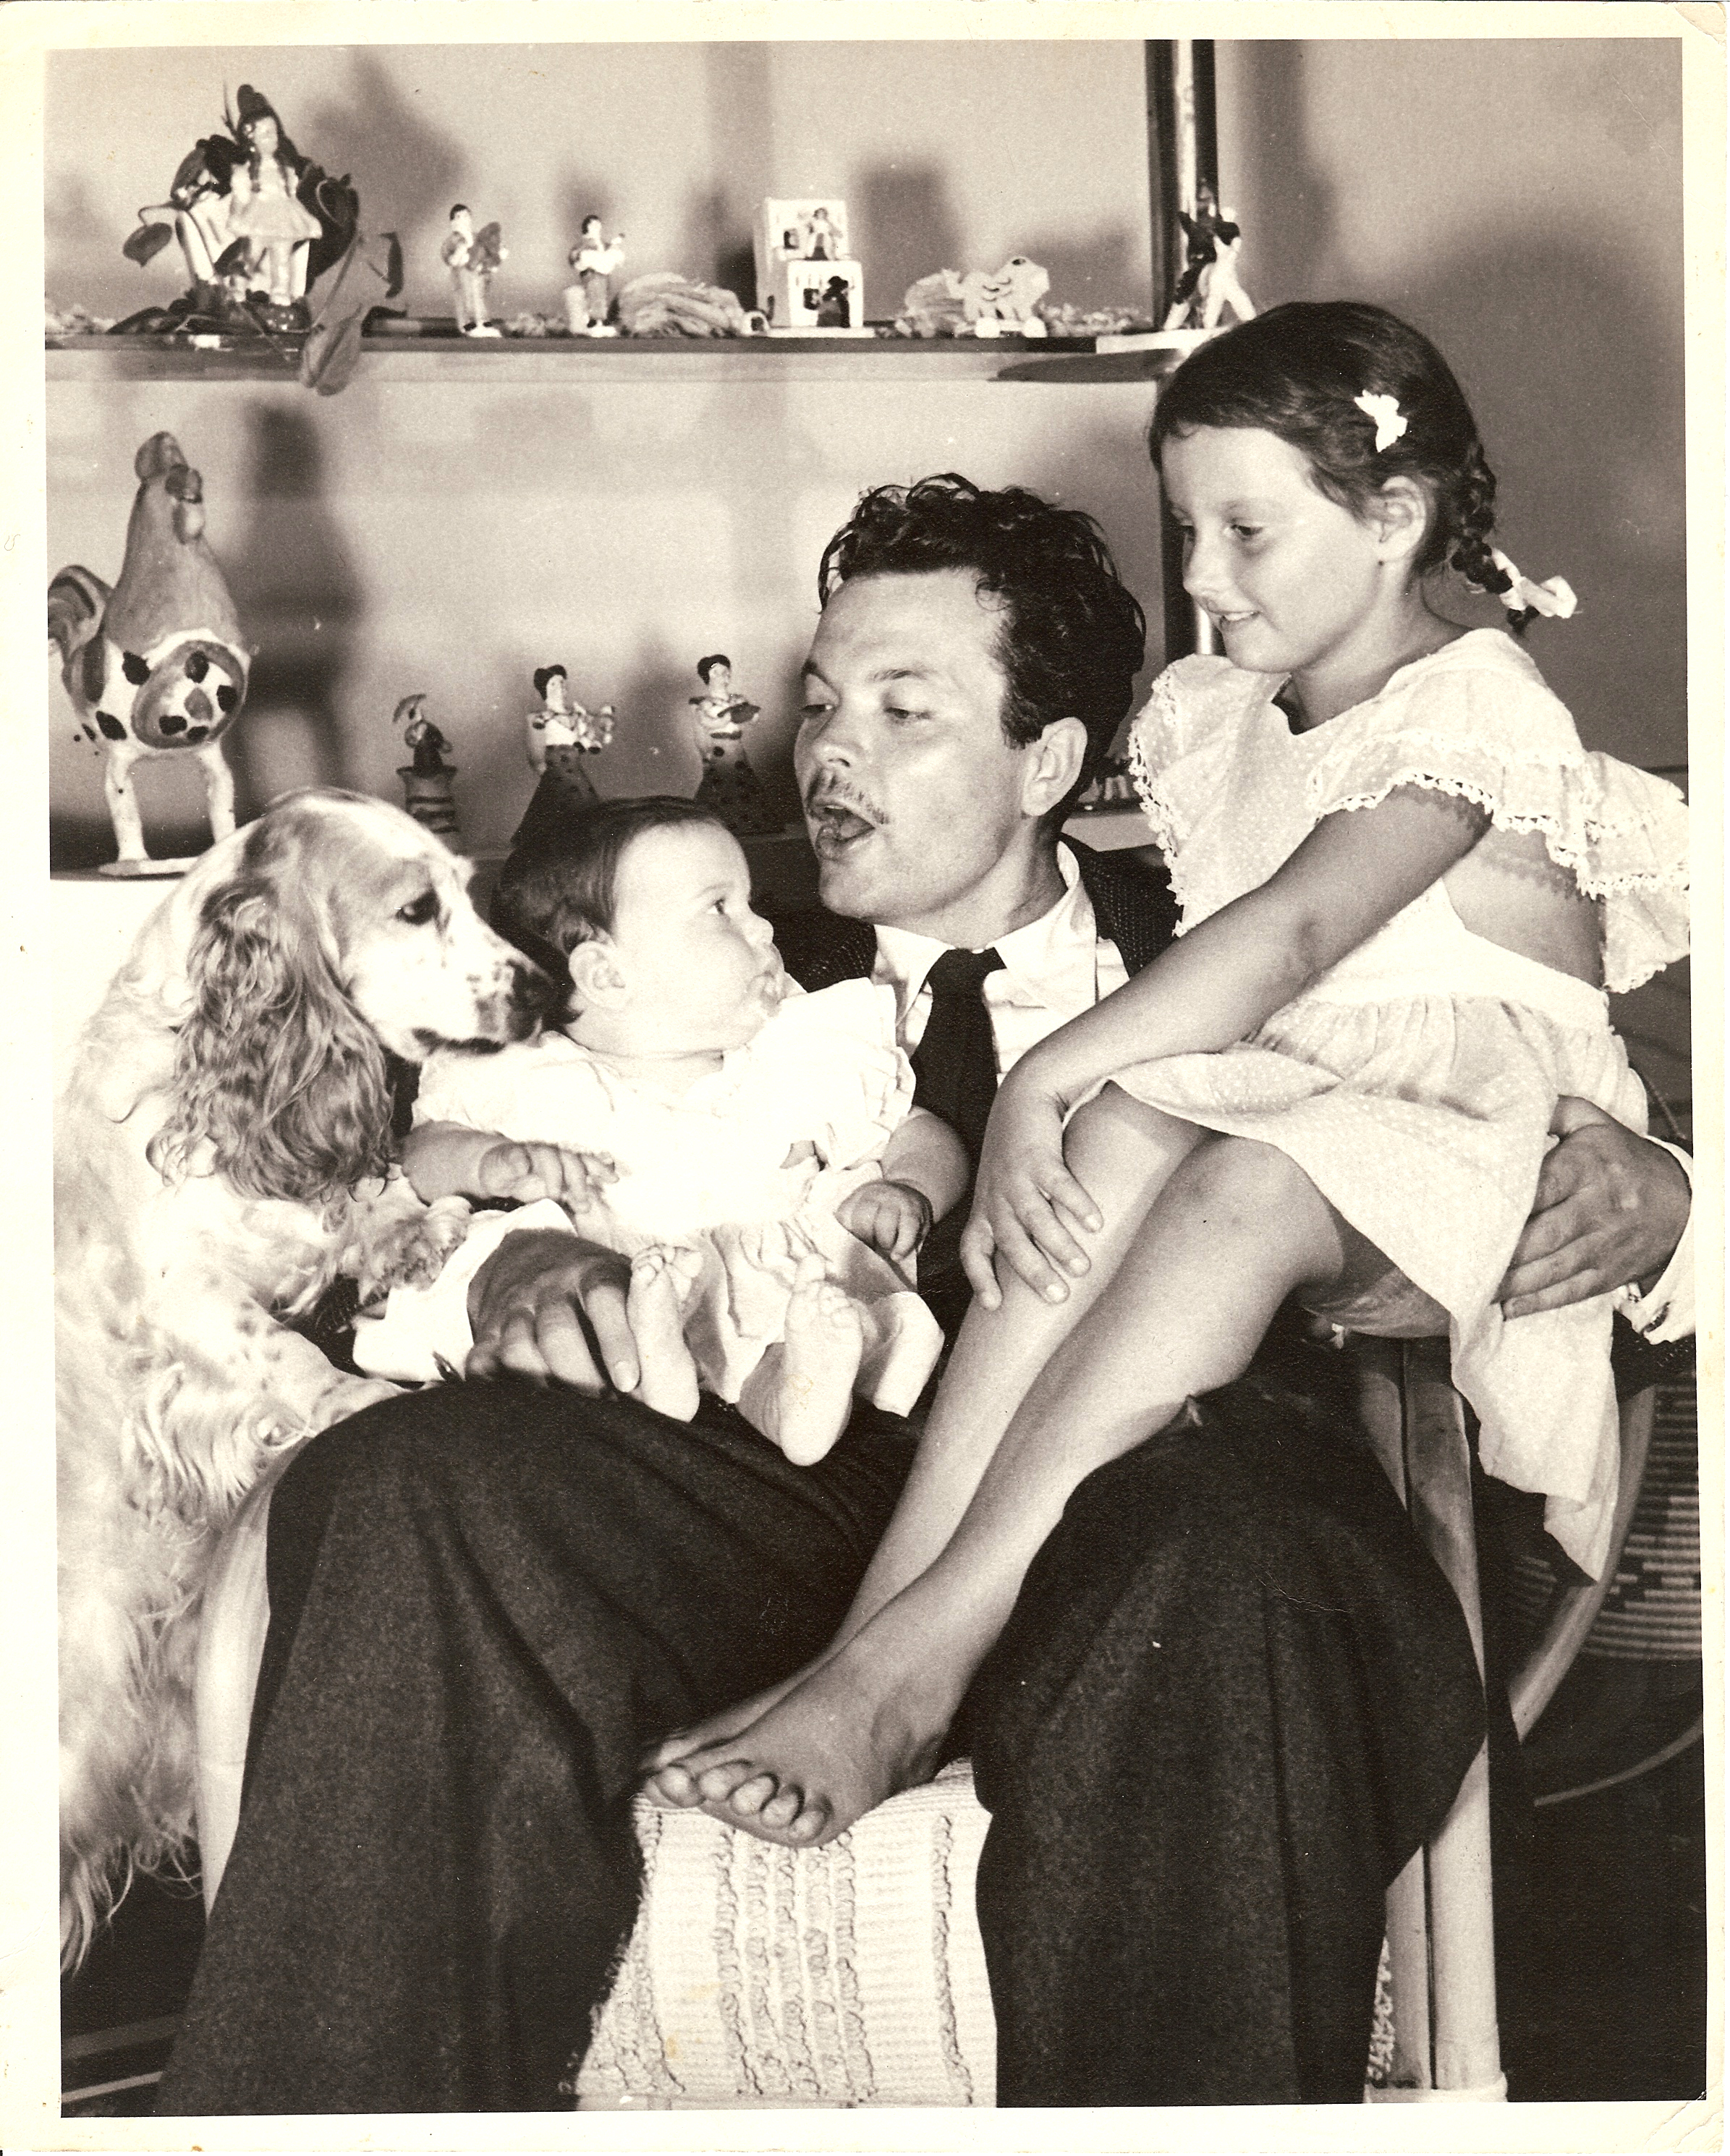 Family man Orson Welles, 1945, pictured with his two daughters, Chris Welles Feder (right) from his marriage to Virginia Nicolson, and infant Rebecca Welles Manning, from his marriage to actress Rita Hayworth. Image courtesy of the Special Collections Library at the University of Michigan